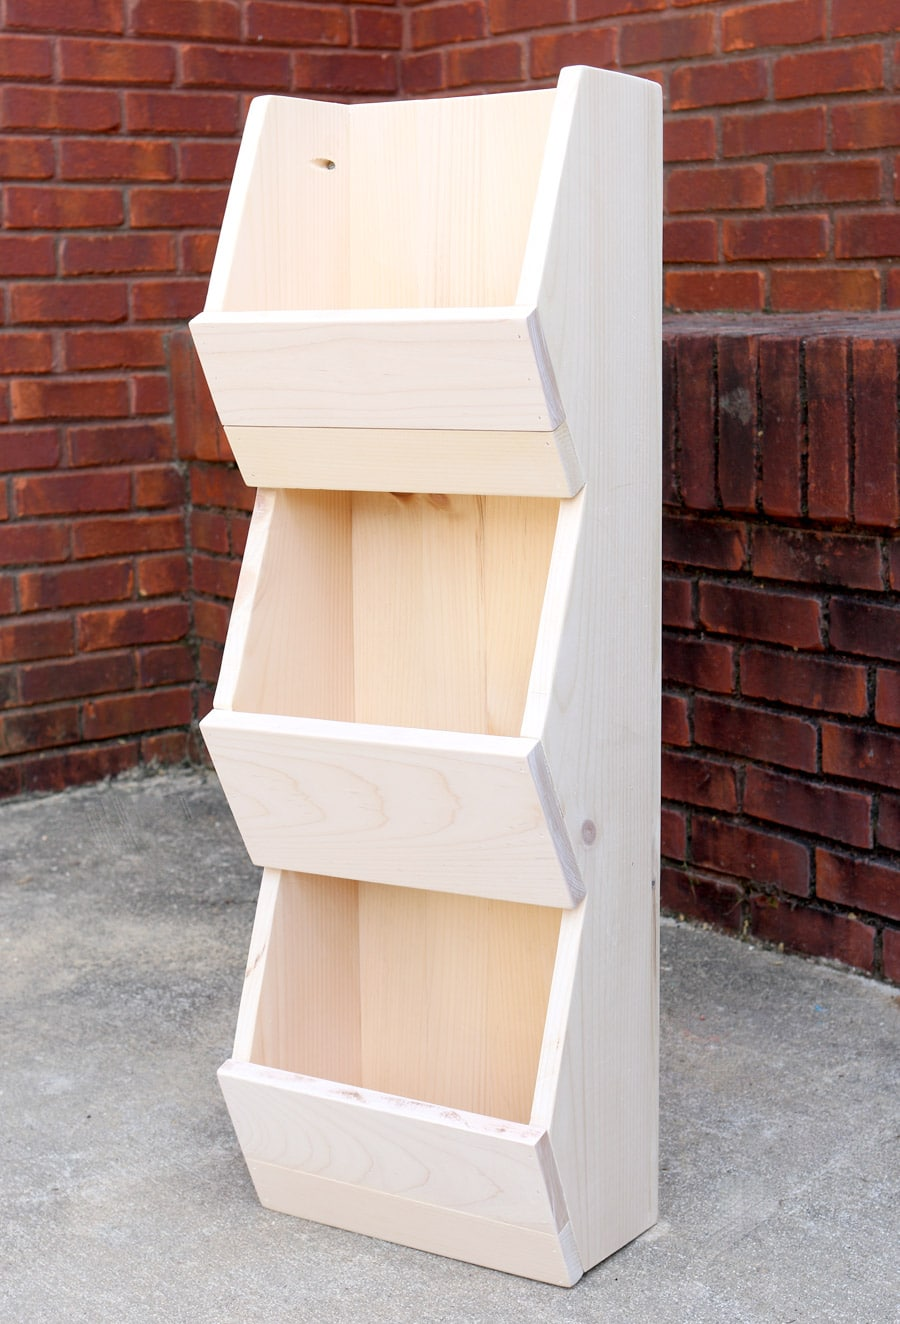 How to build a DIY West Elm Cubby Shelf